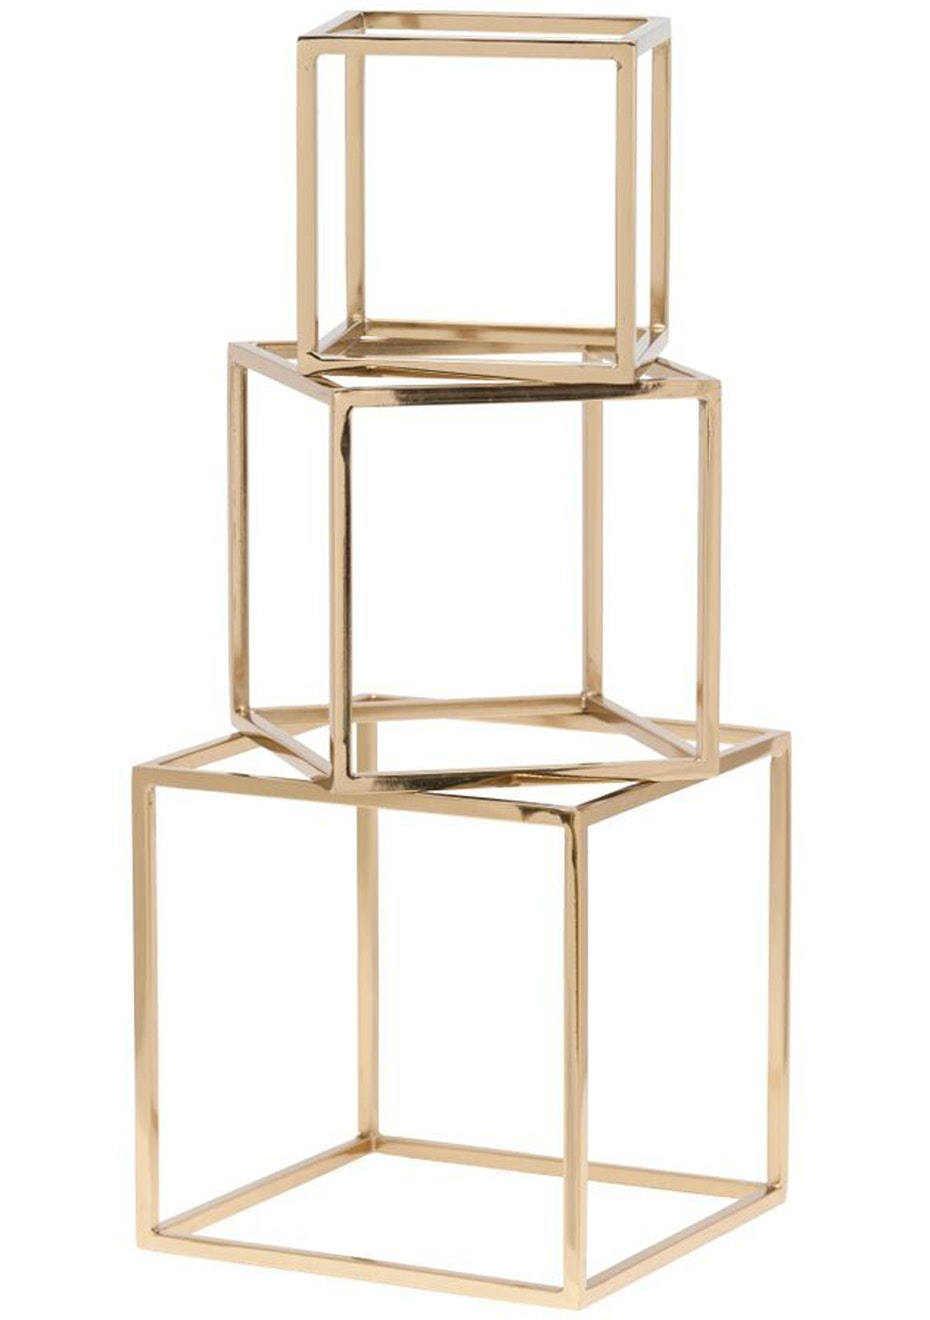 General Eclectic - Set of Cubes Brass